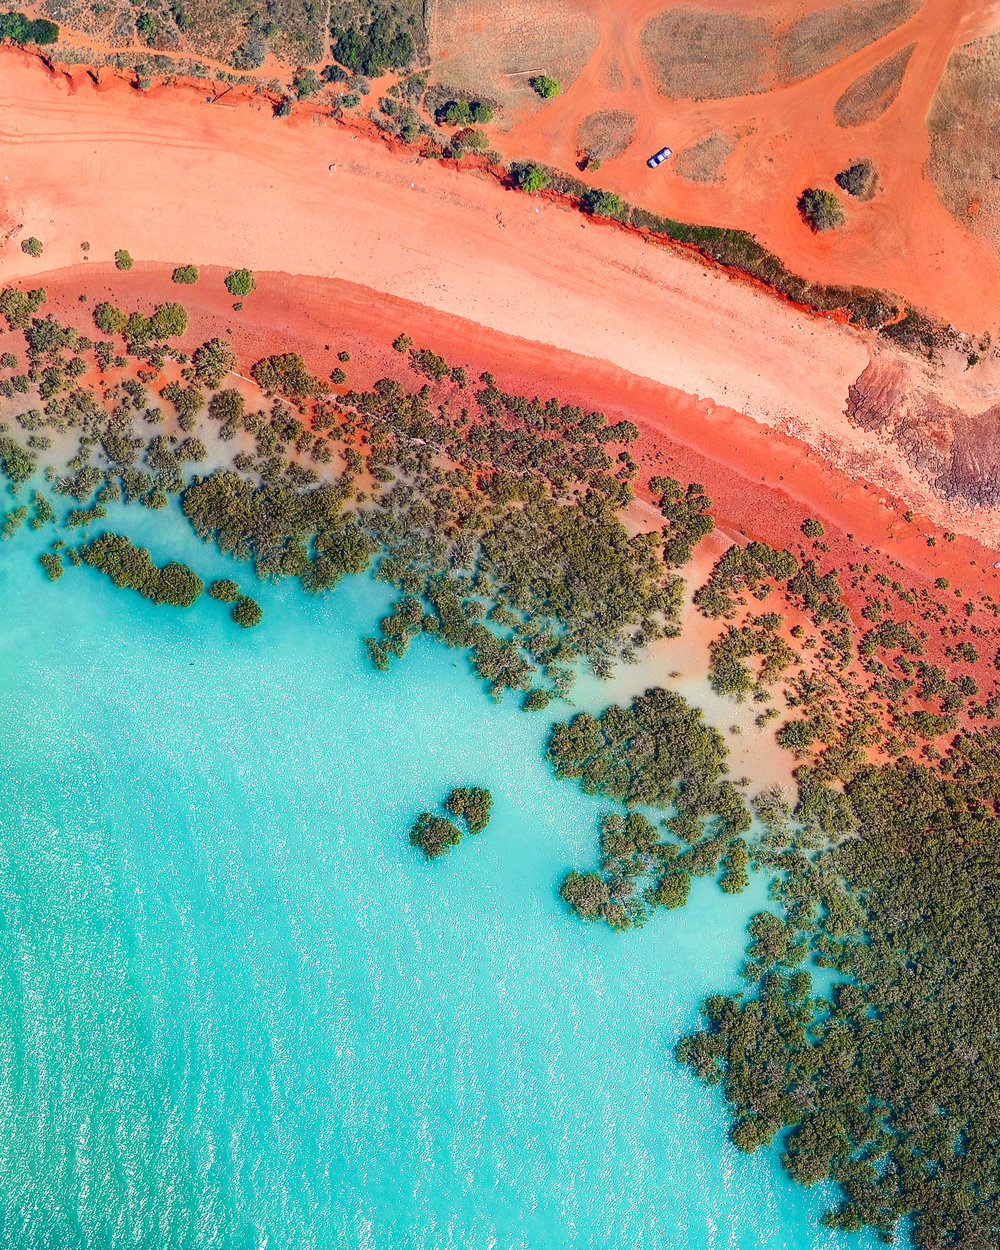 """The aquamarine water of Roebuck Bay rolls onto red sand in Broome, Western Australia. A coastal town, Broome is home to roughly 14,000 people, but its population can grow to upwards of 45,000 per month during peak tourist season from June to August.  17°58'09.8""""S, 122°14'16.3""""E  Source imagery: Nearmap"""